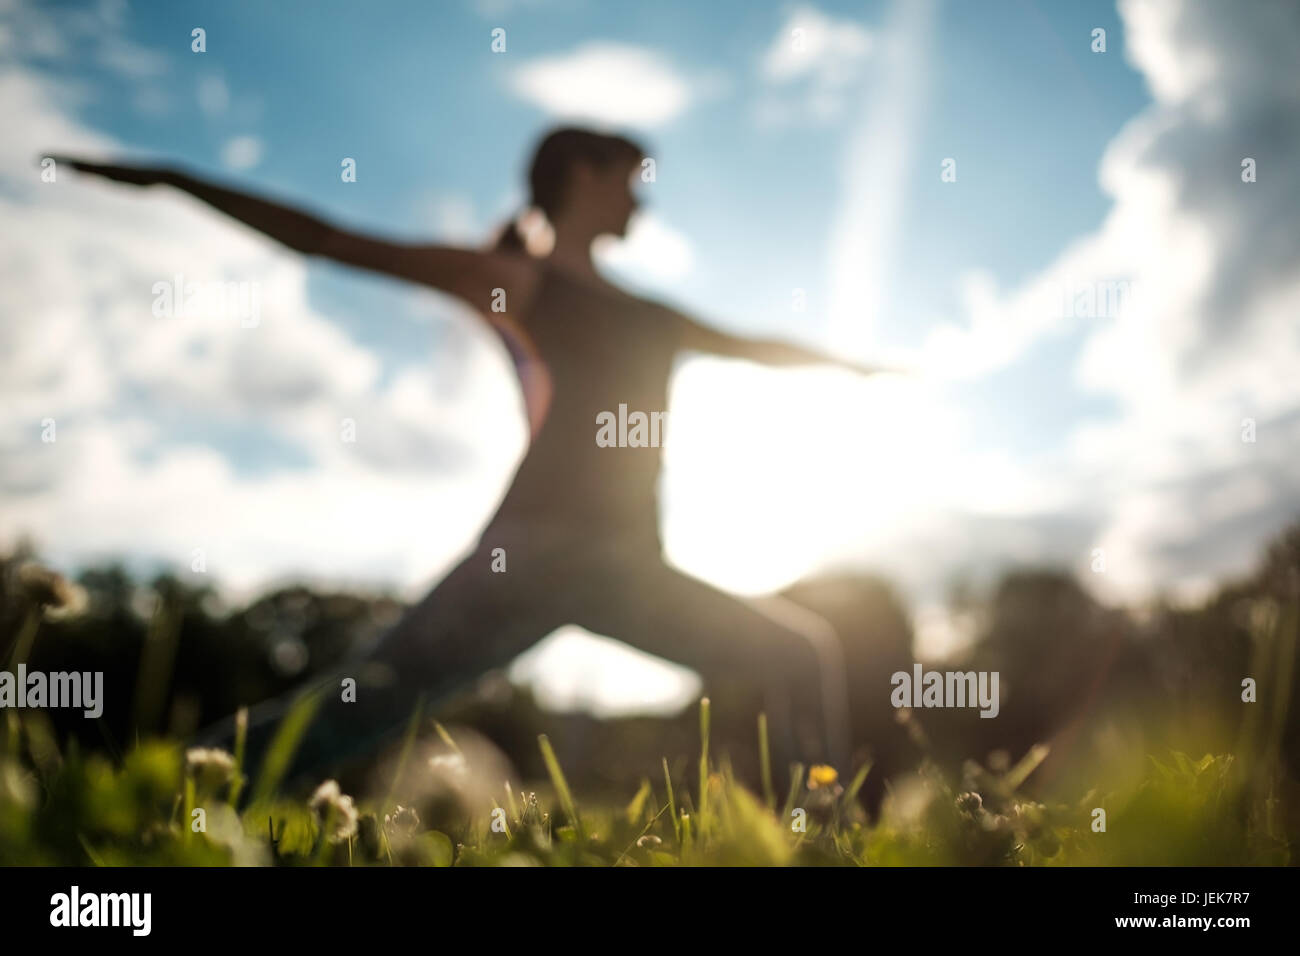 Sporty fit caucasian woman doing asana Virabhadrasana 2 Warrior pose posture in nature. - Stock Image